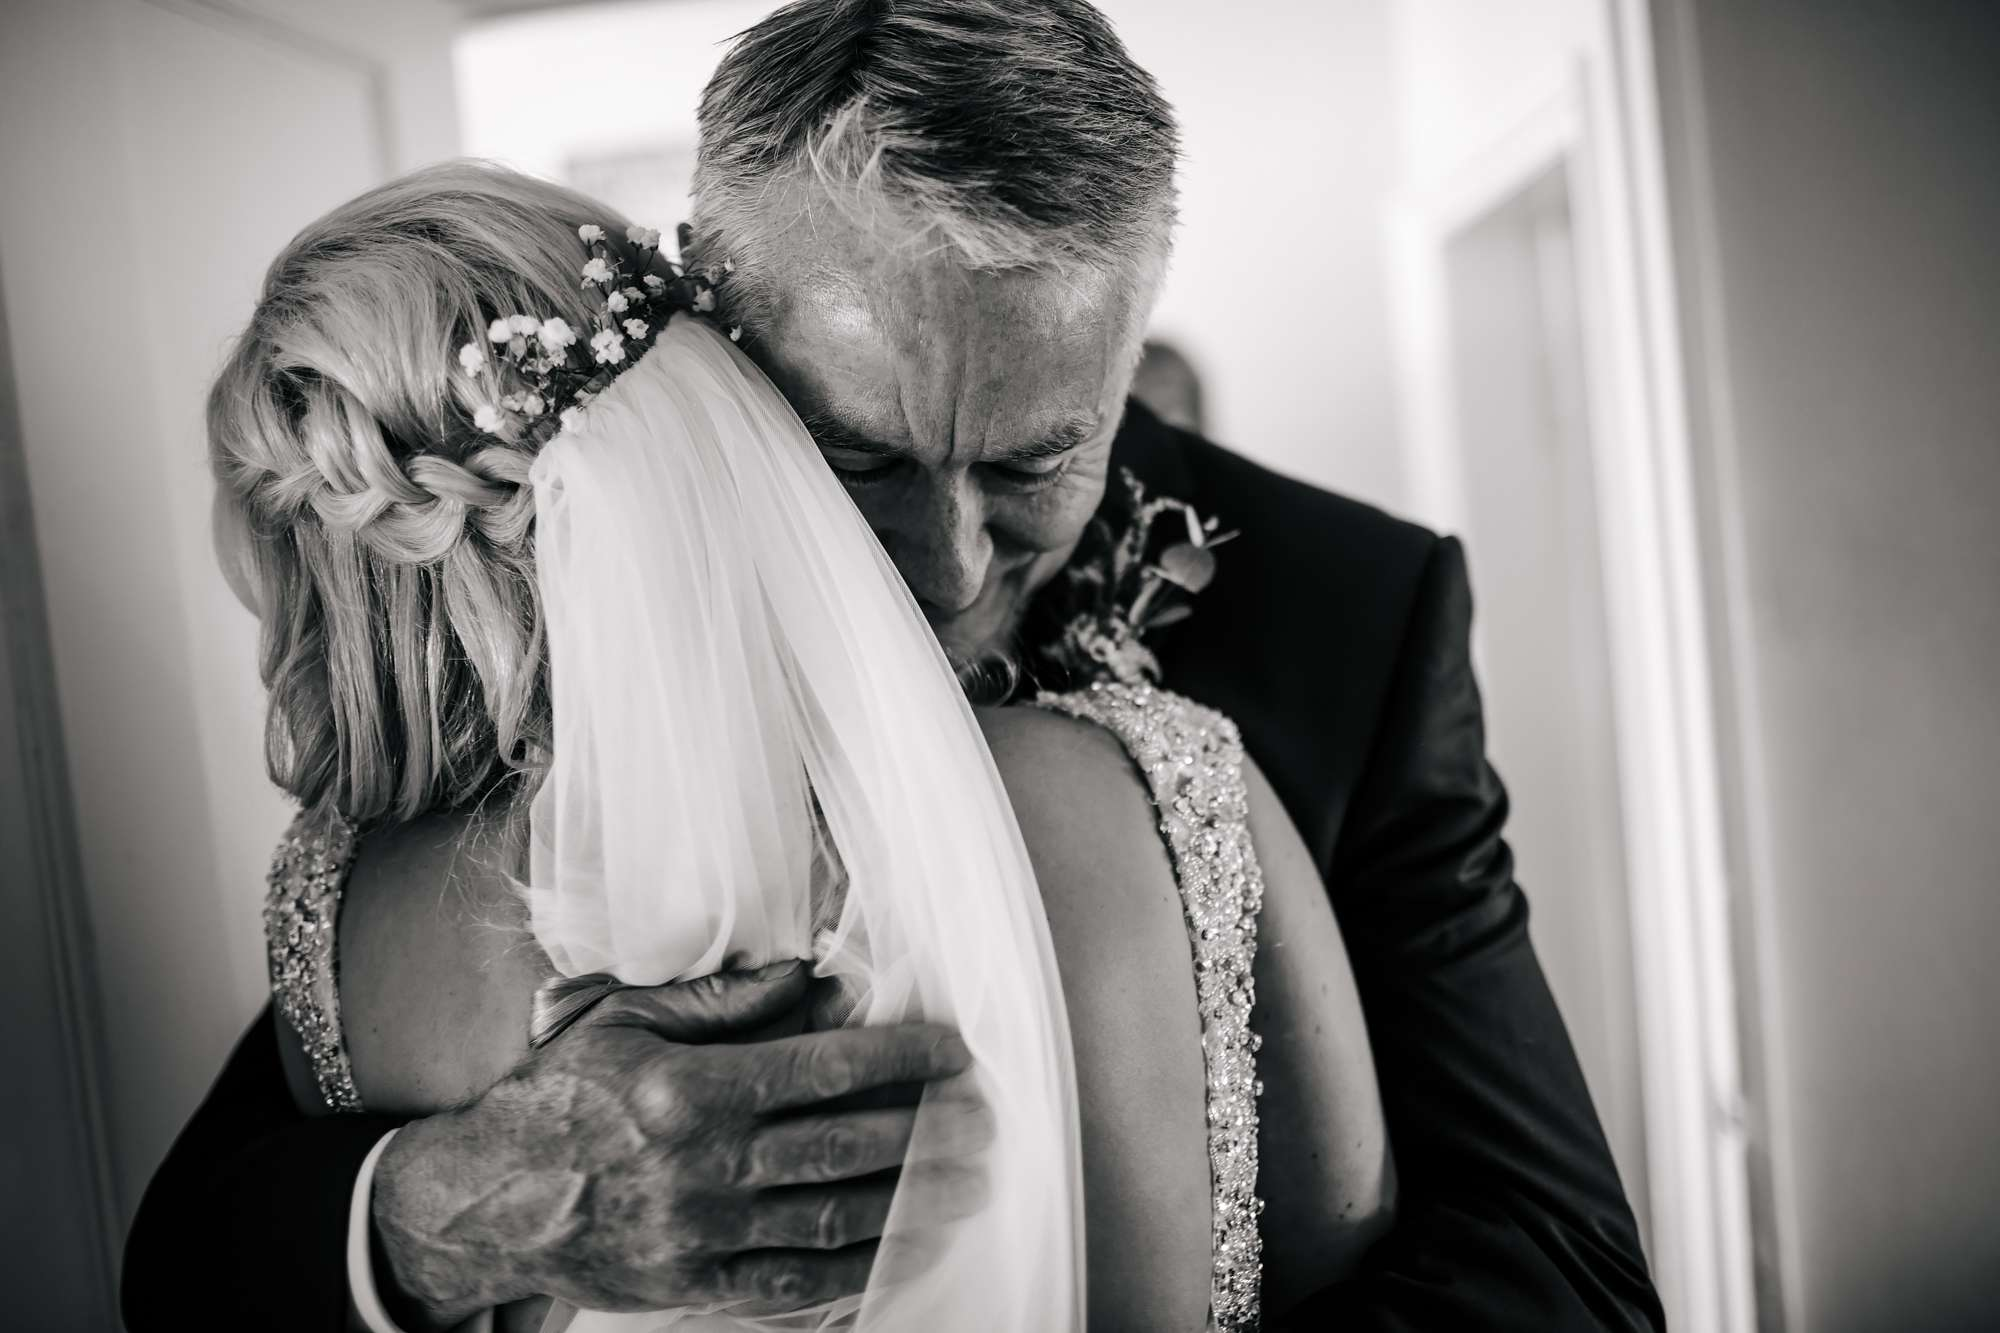 Emotional dad sees bride for the first time hugging